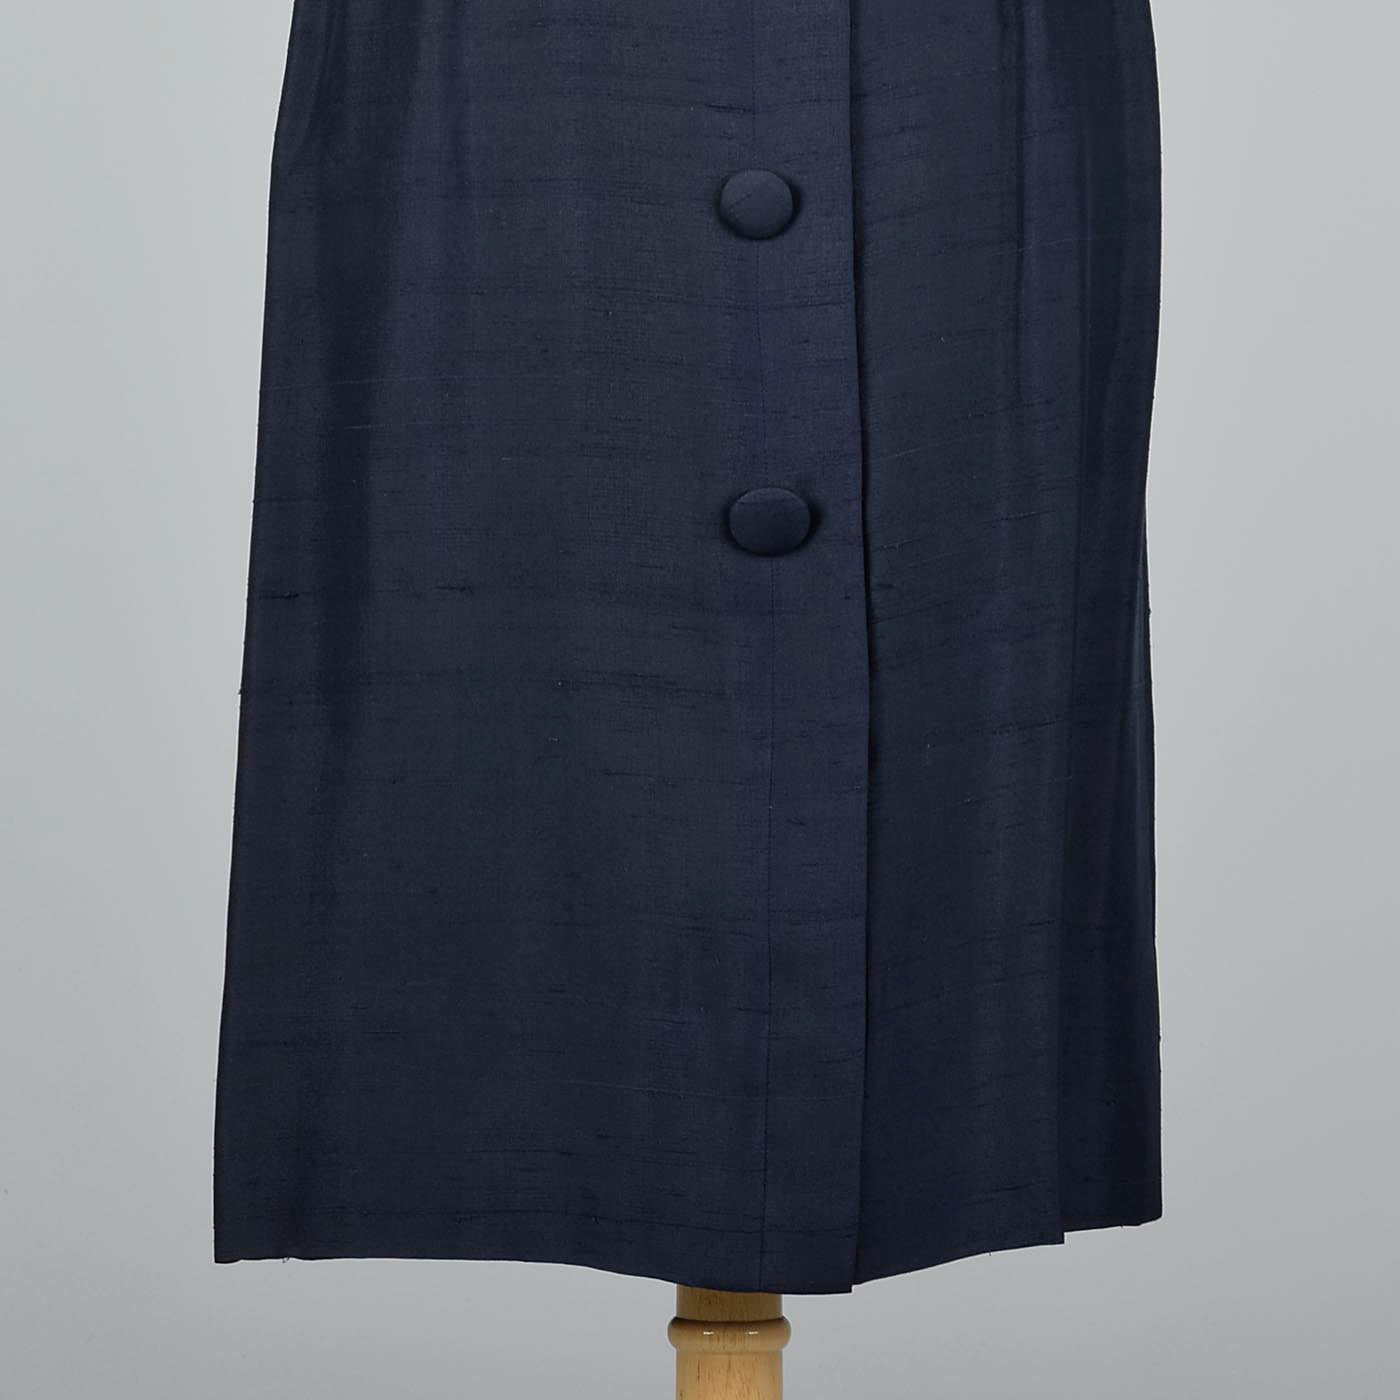 1950s Navy Silk Dress with Wide Belt and Decorative Buttons